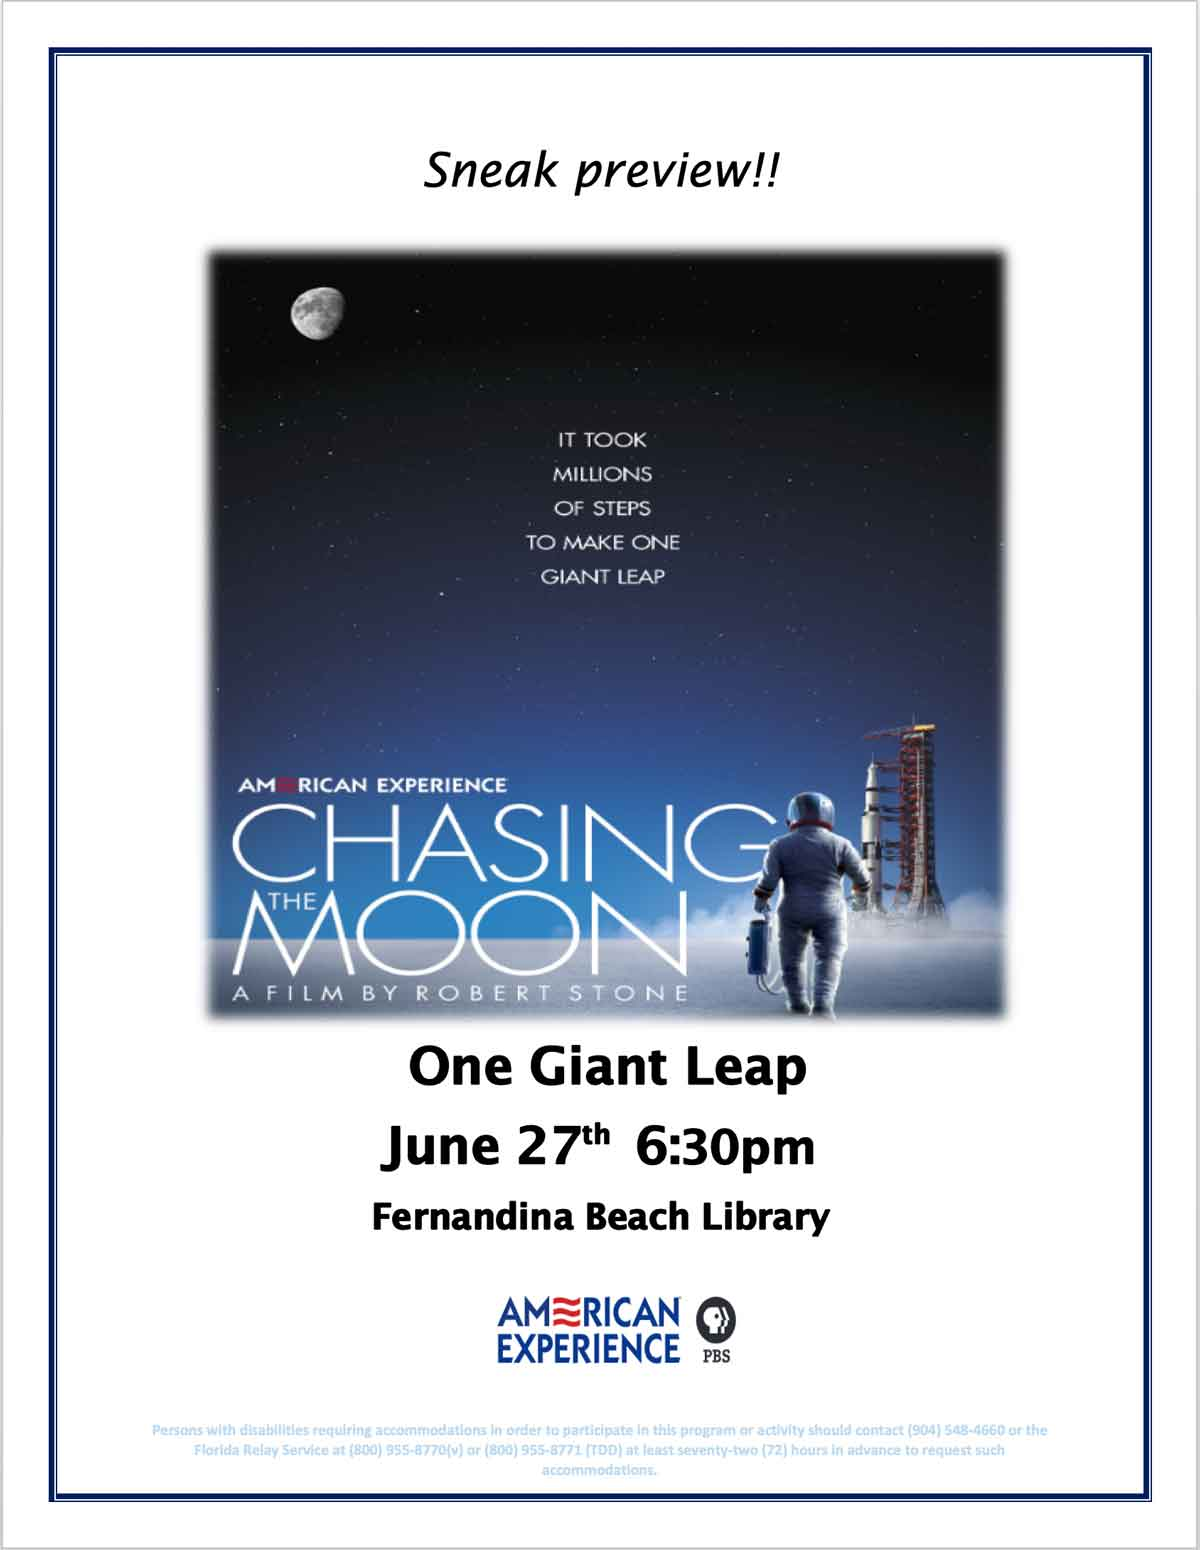 One-Giant-Leap-June-27 at 6:30 Fernandina Beach Library